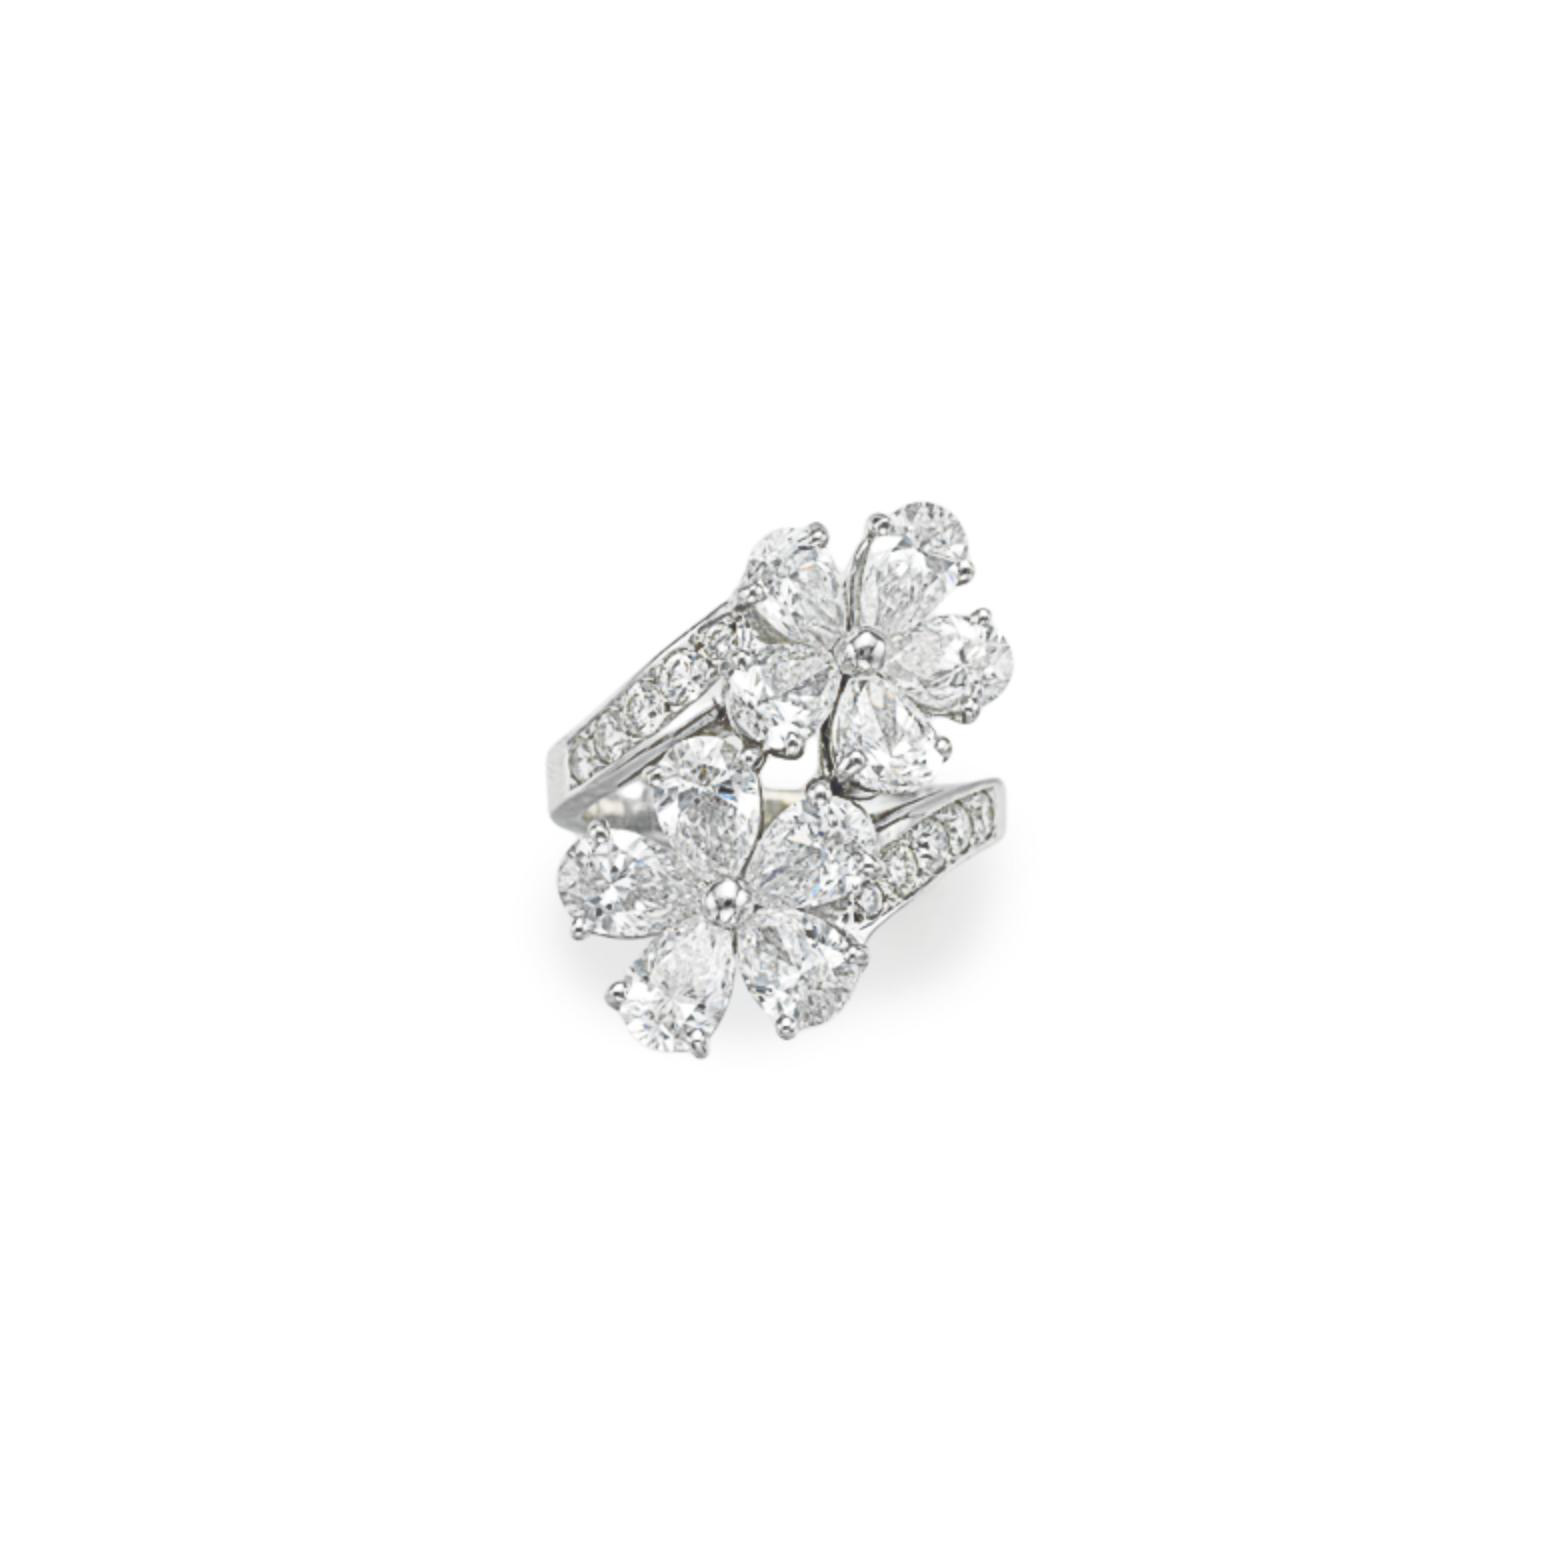 A DIAMOND 'CONTRAIRE' RING, BY